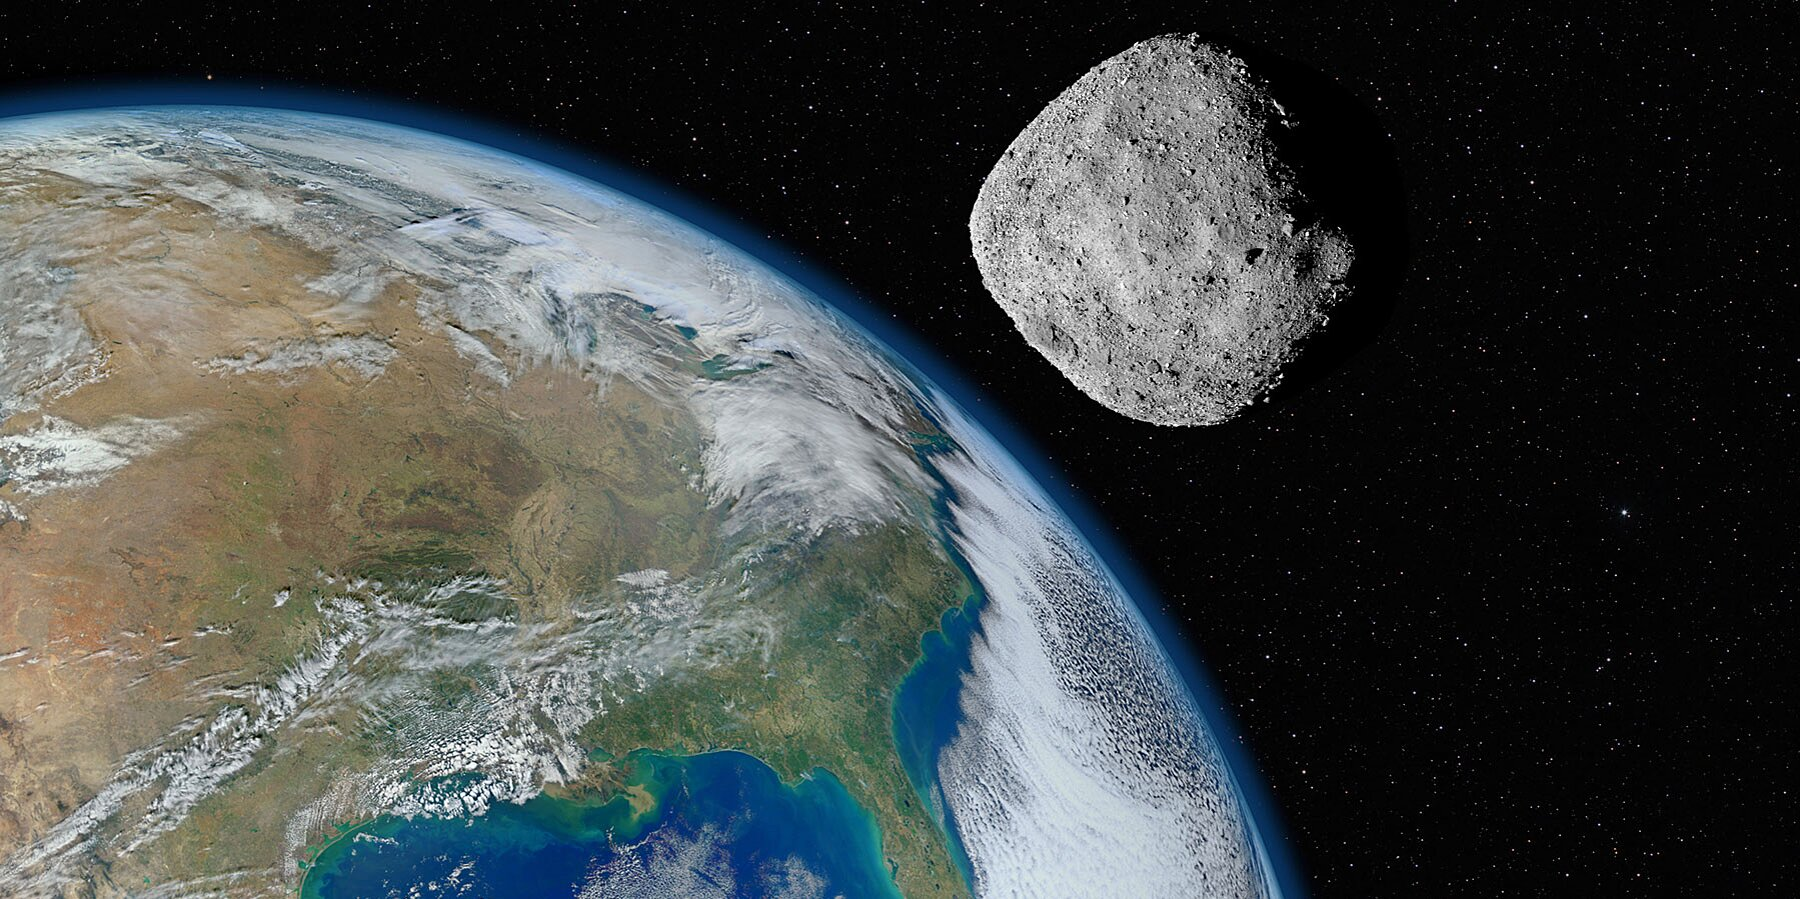 NASA Says an Asteroid Is Projected to Head Towards Earth a Day Before the Election